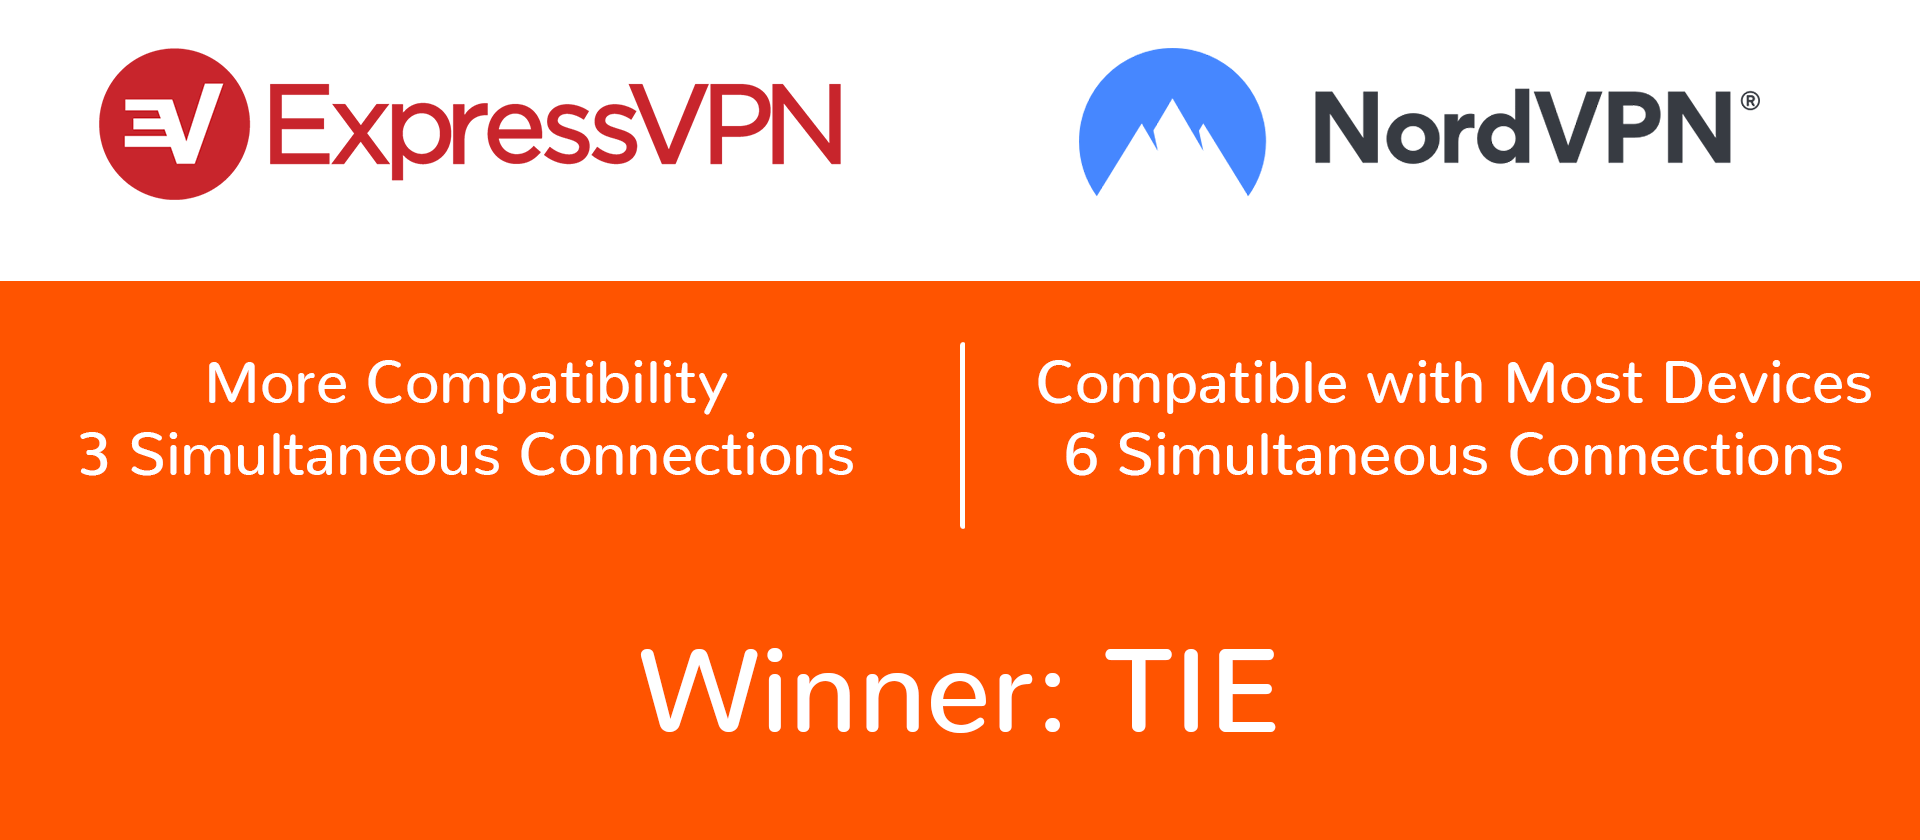 nordvpn vs expressvpn devices and operating systems